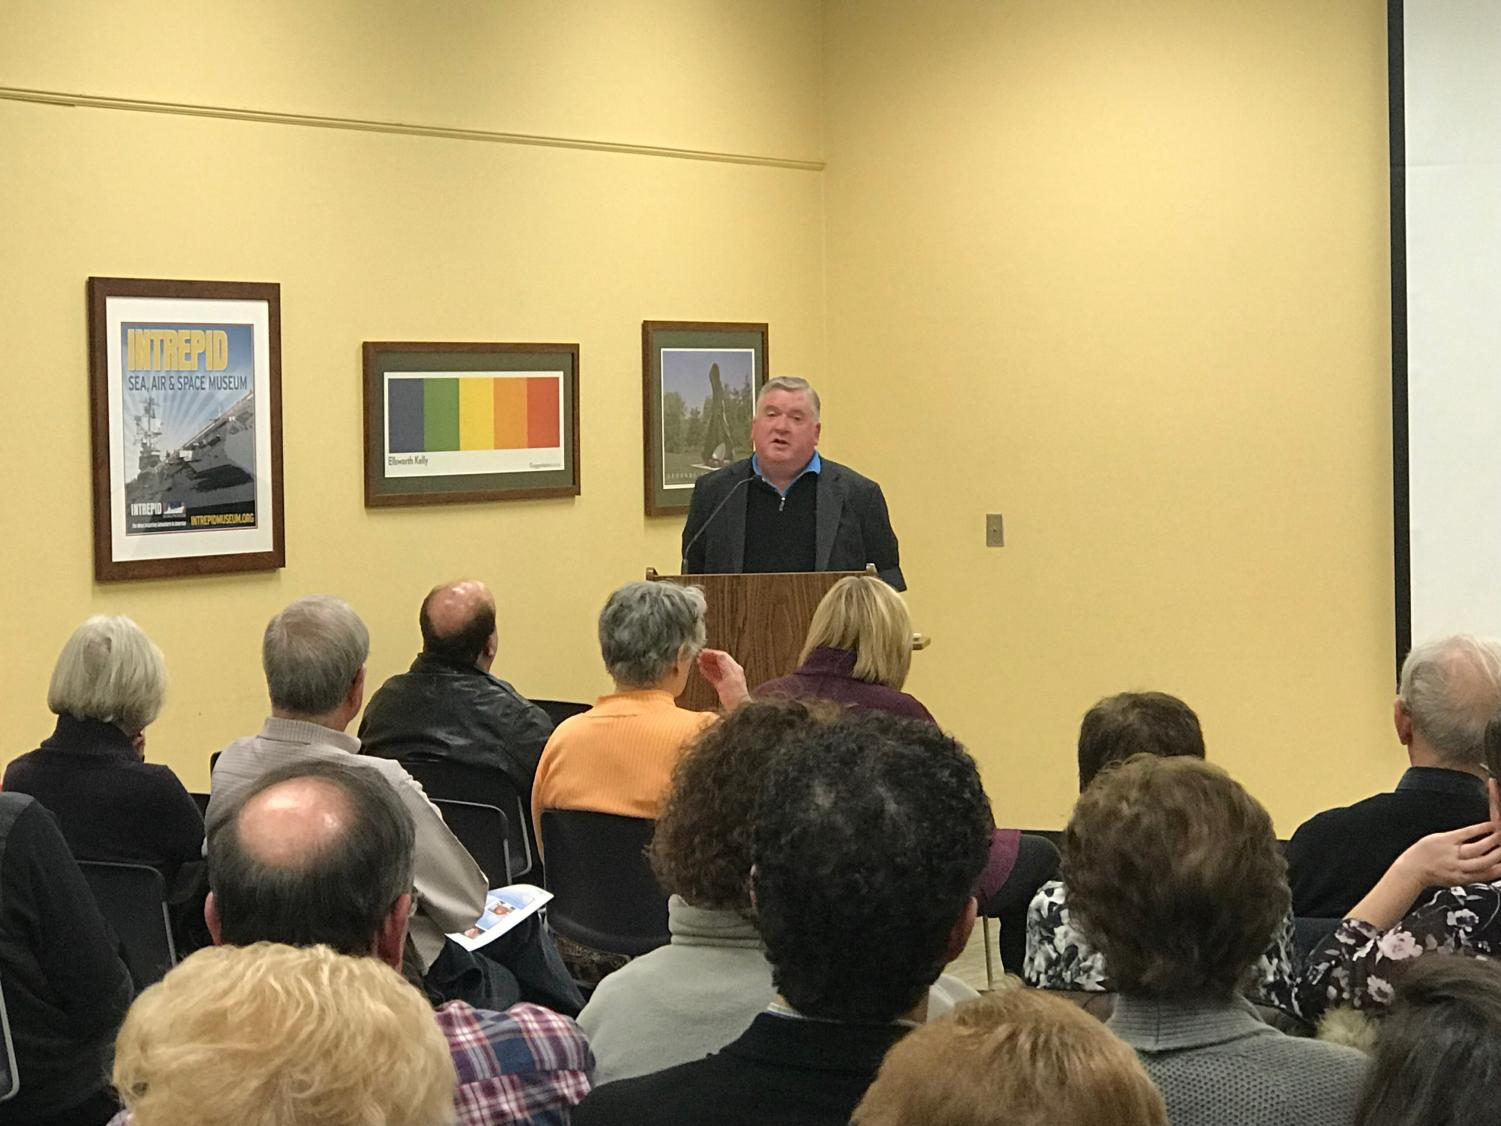 Reporter Joe Nolan speaks to the community at the Westfield Memorial Library as a part of the Hale Speaker Series.